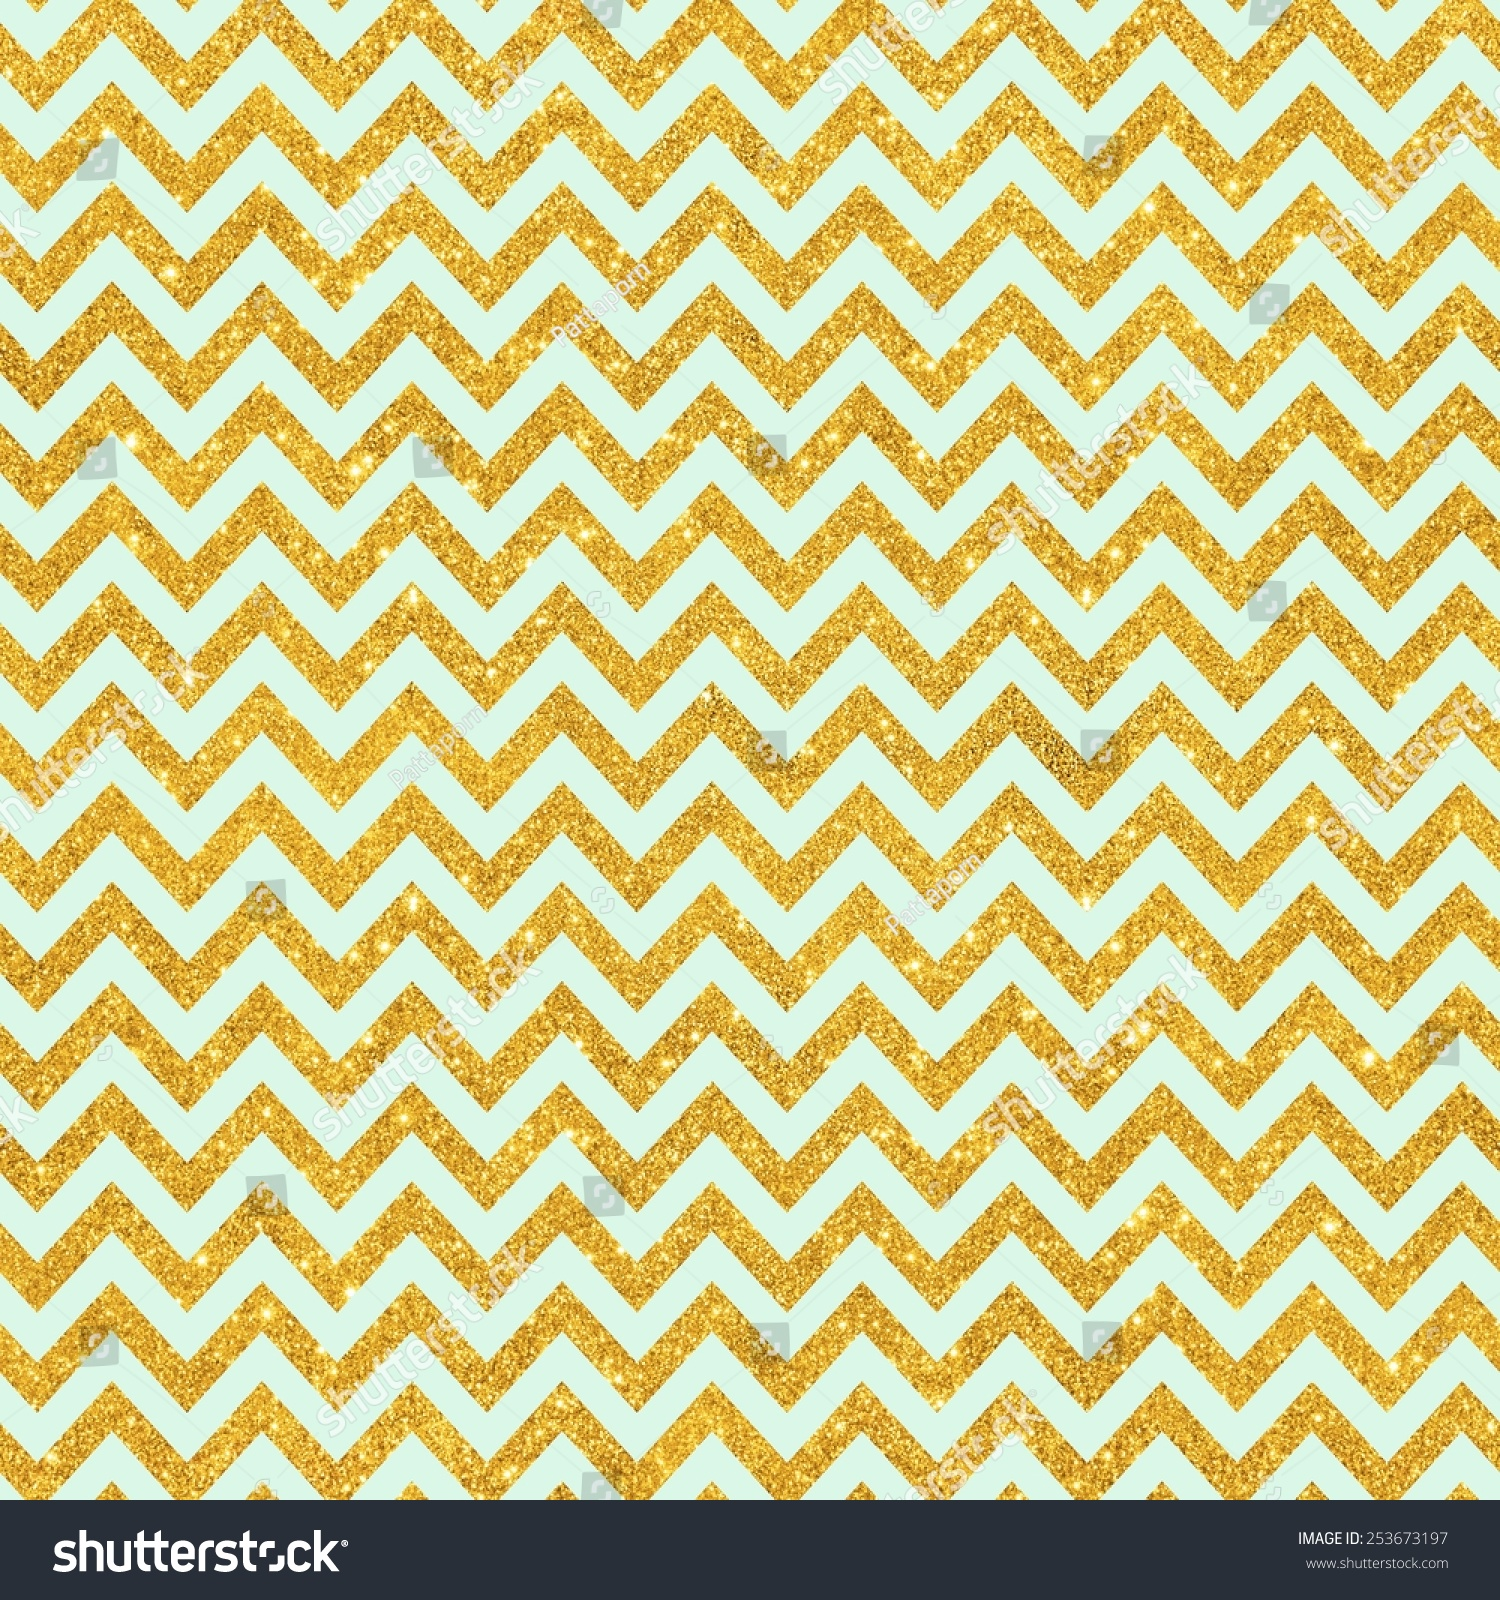 How to scrapbook with glitter - Digital Paper For Scrapbook Mint Gold Glitter Zig Zag Chevron Pattern Seamless Texture Background